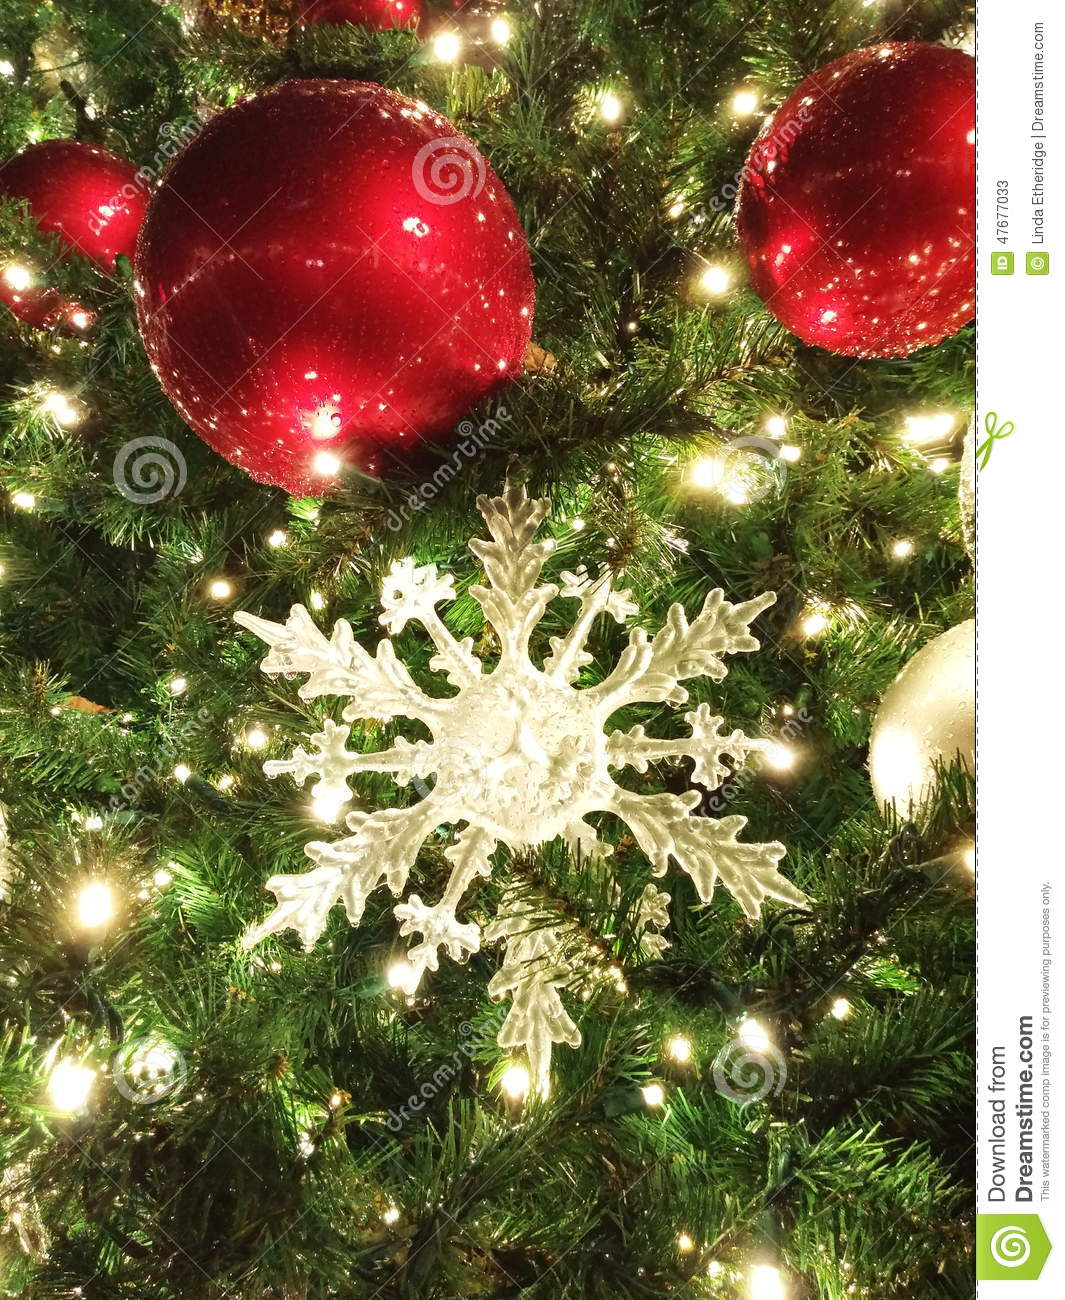 oversized christmas ball and star ornaments beaded with rain closeup vertical portrait